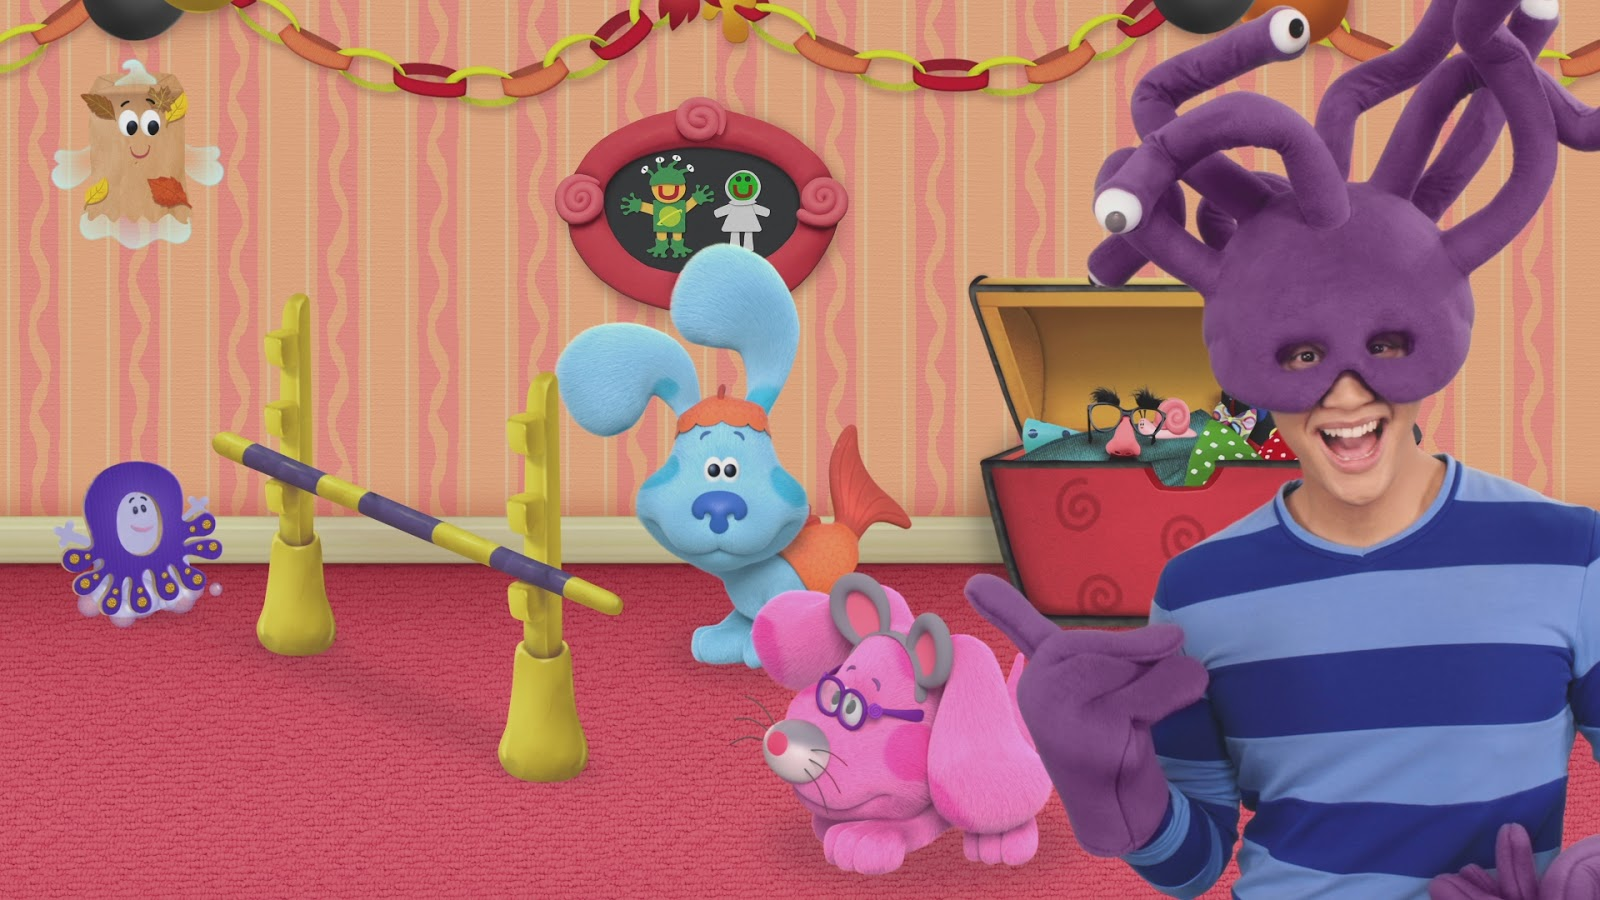 Nick Jr. UK to Premiere 'Blue's Clues & You!' Halloween Special 'Spooky Costume Party with Blue' on Thursday 22nd October 2020